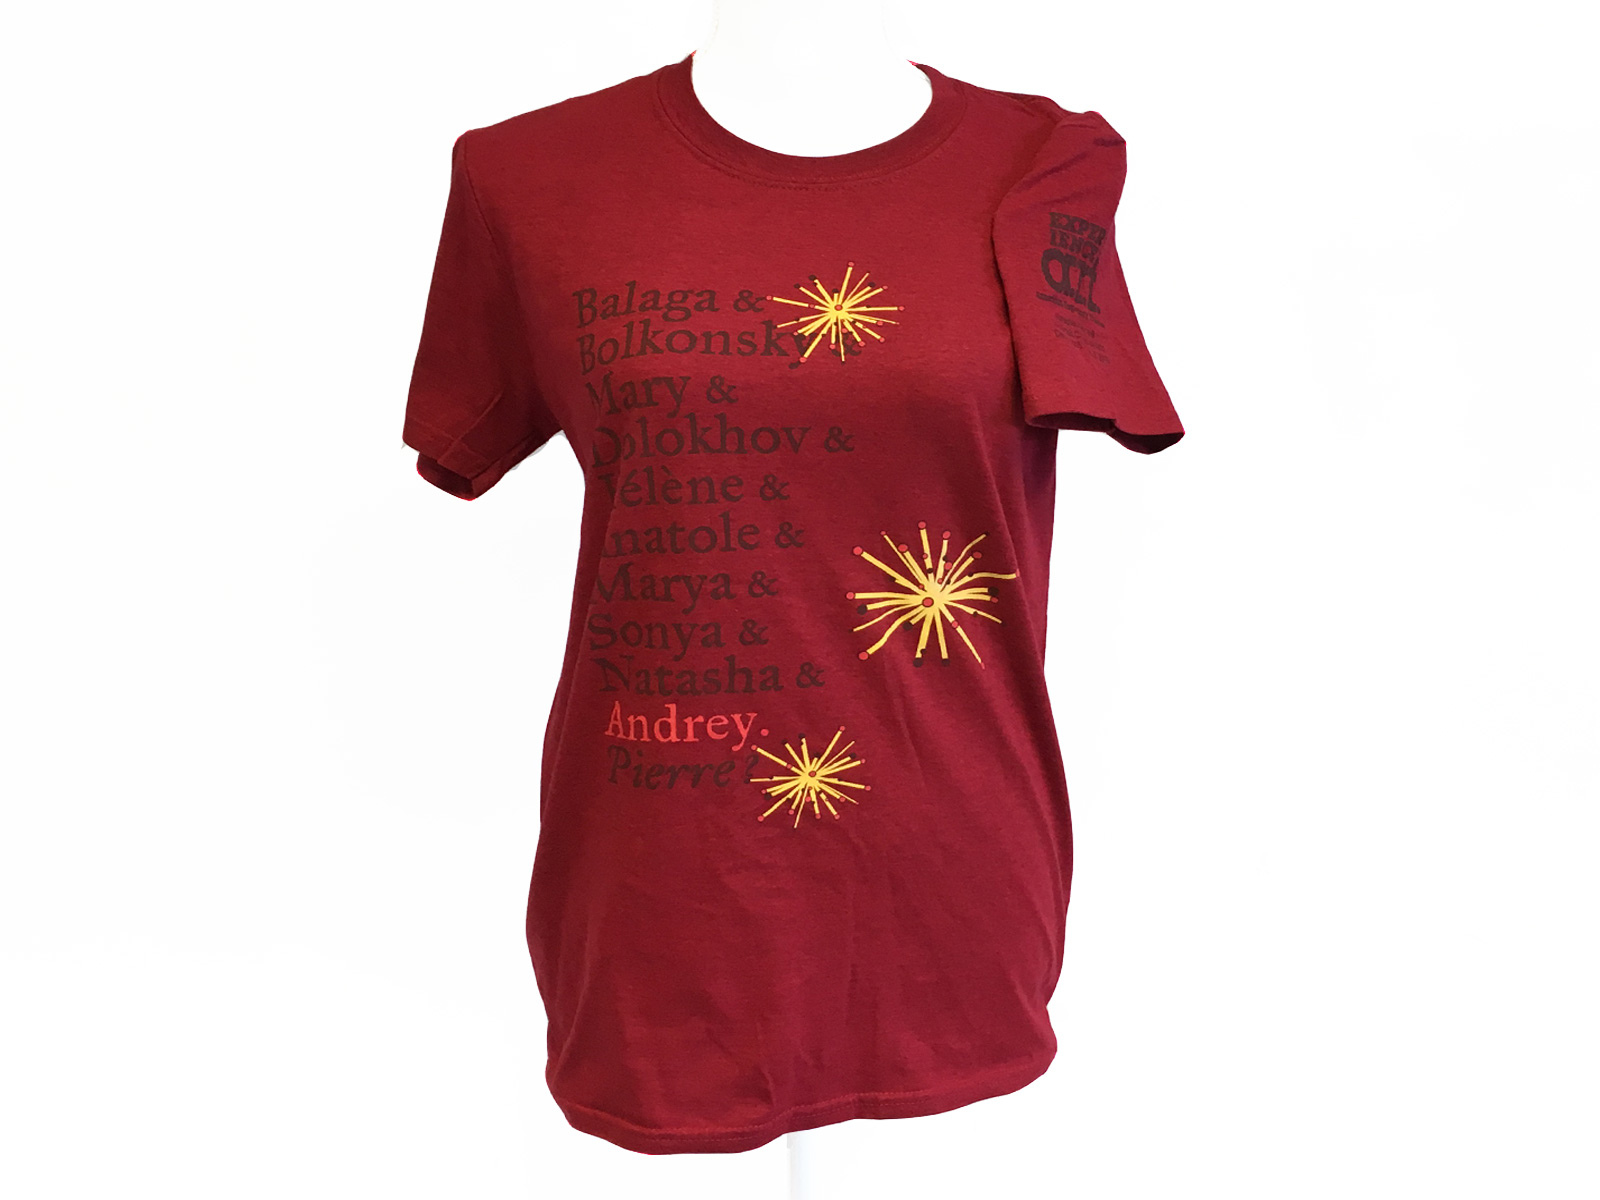 The Great Comet T-shirt